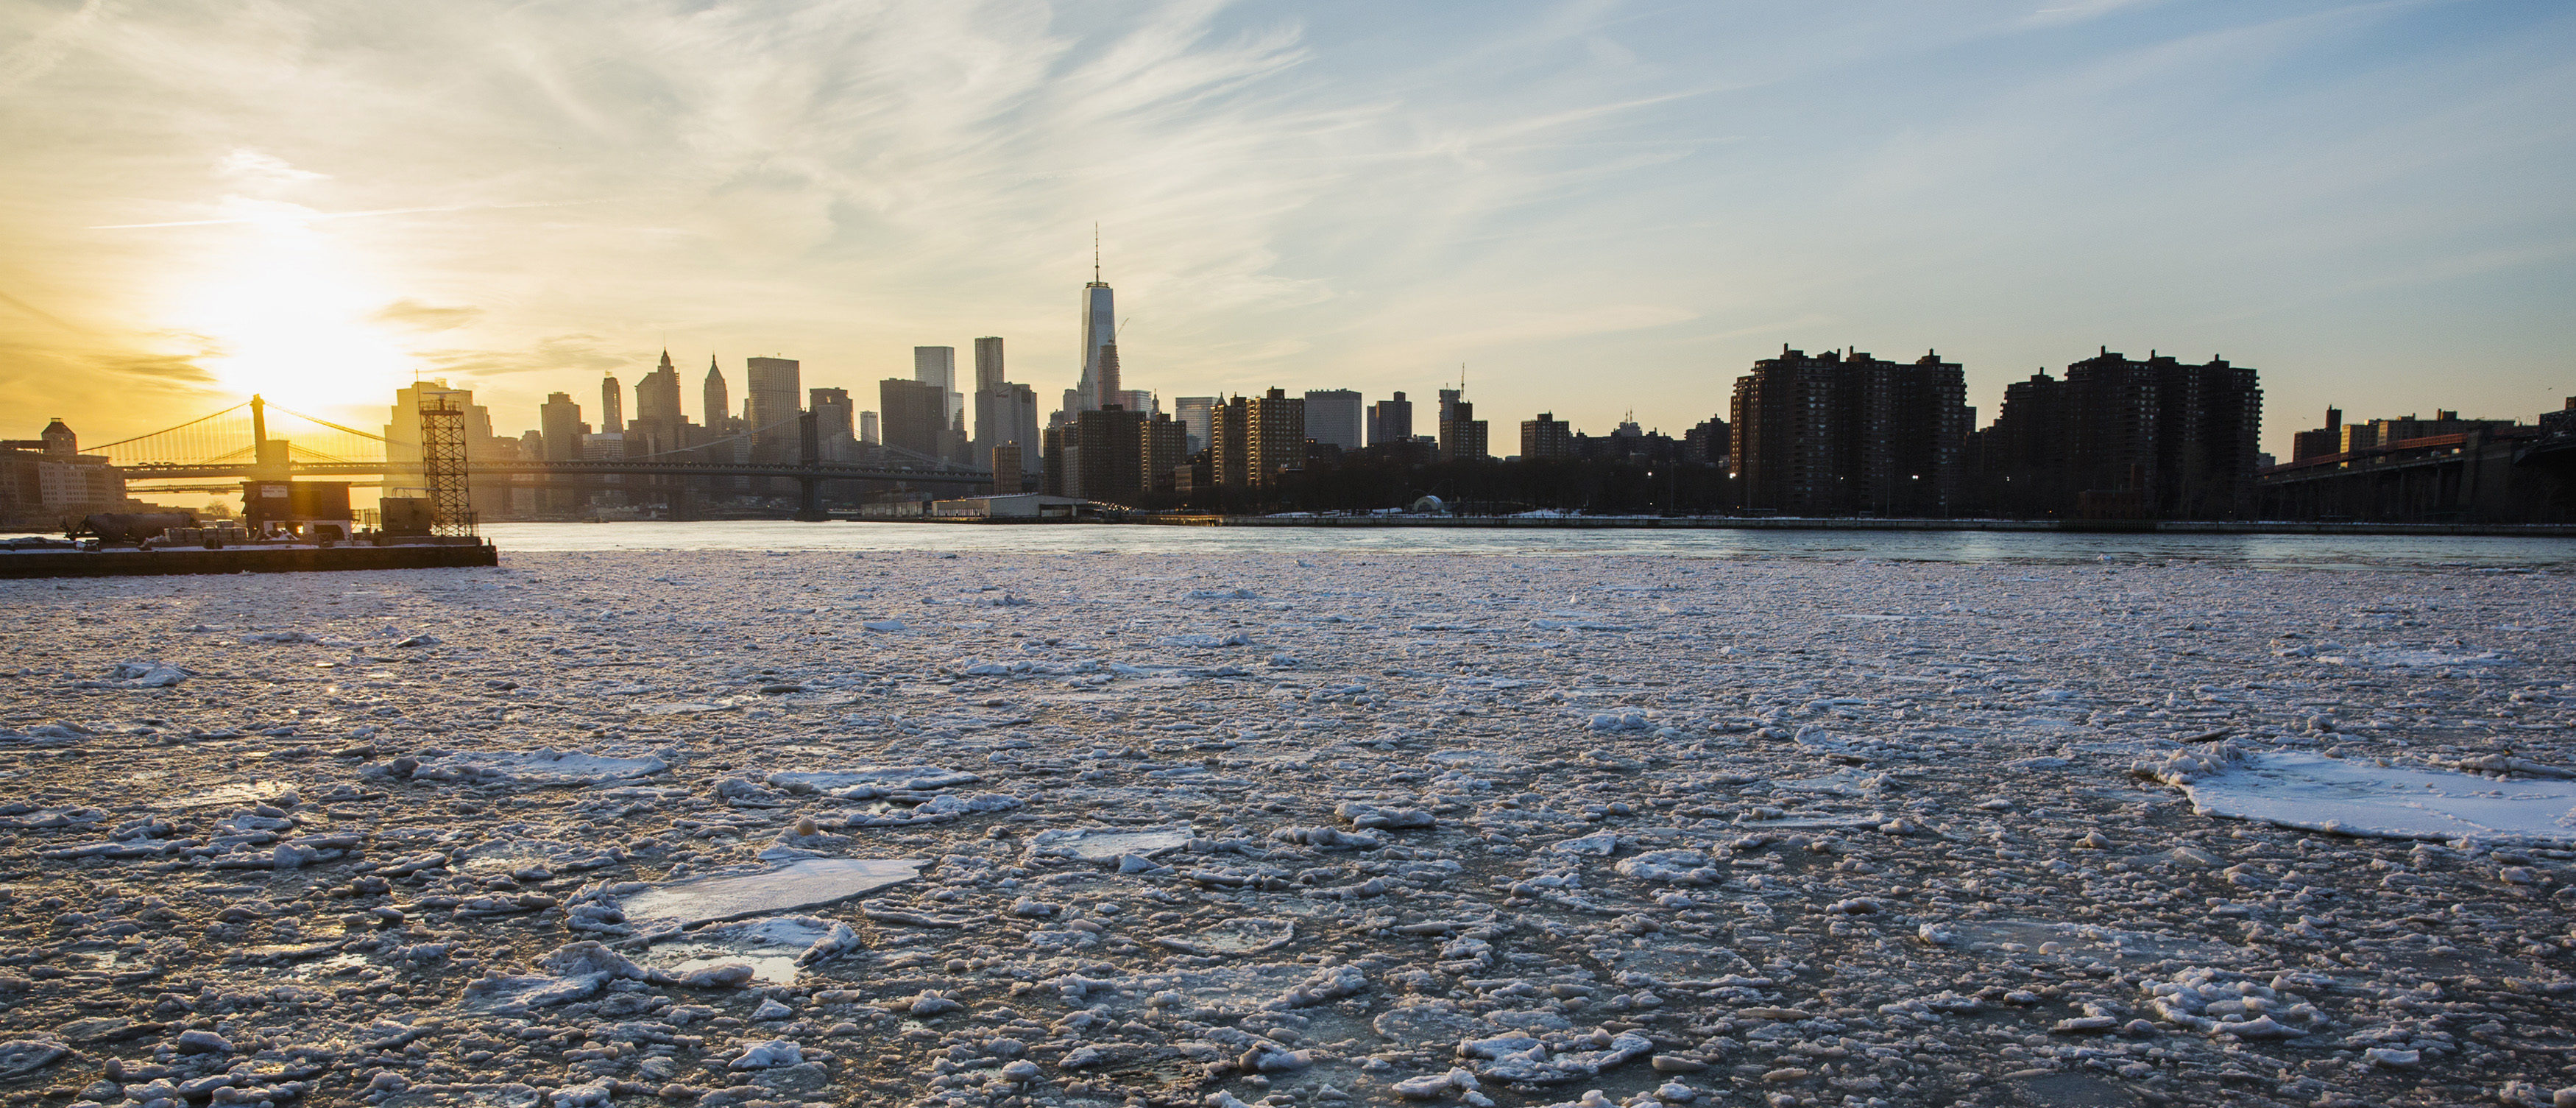 The sun sets behind the Manhattan skyline as ice floats down the East River in New York February 25, 2015. REUTERS/Lucas Jackson.